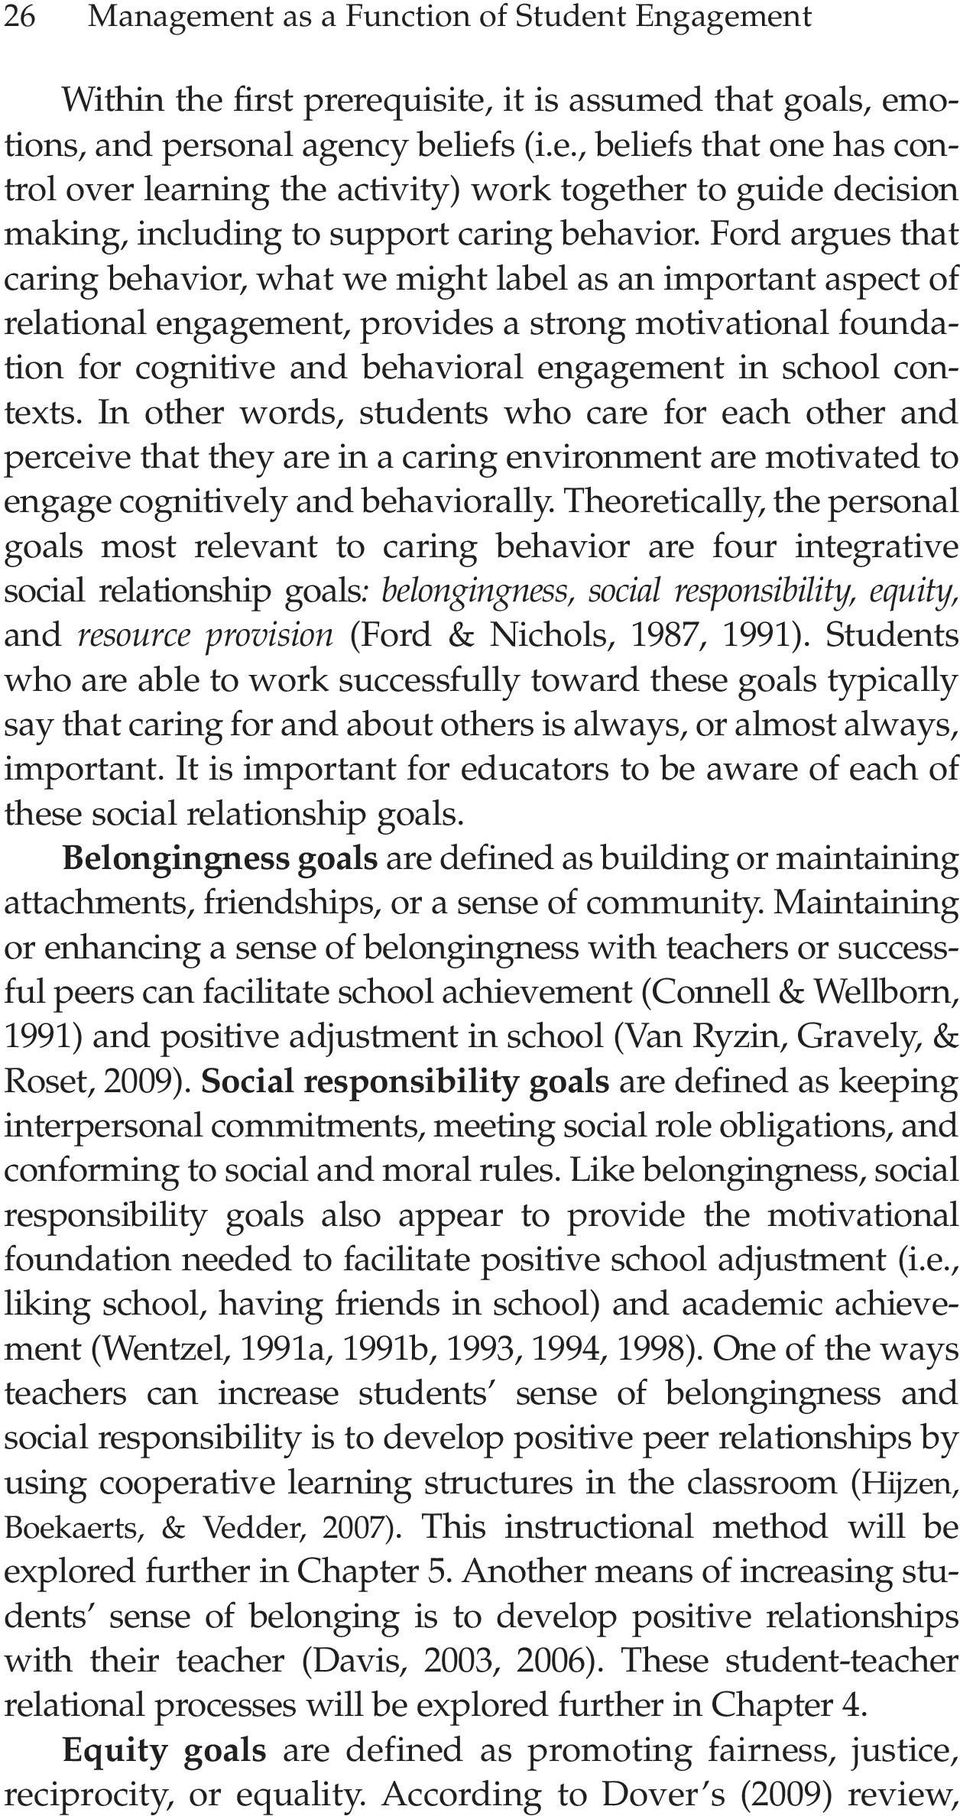 contexts. In other words, students who care for each other and perceive that they are in a caring environment are motivated to engage cognitively and behaviorally.